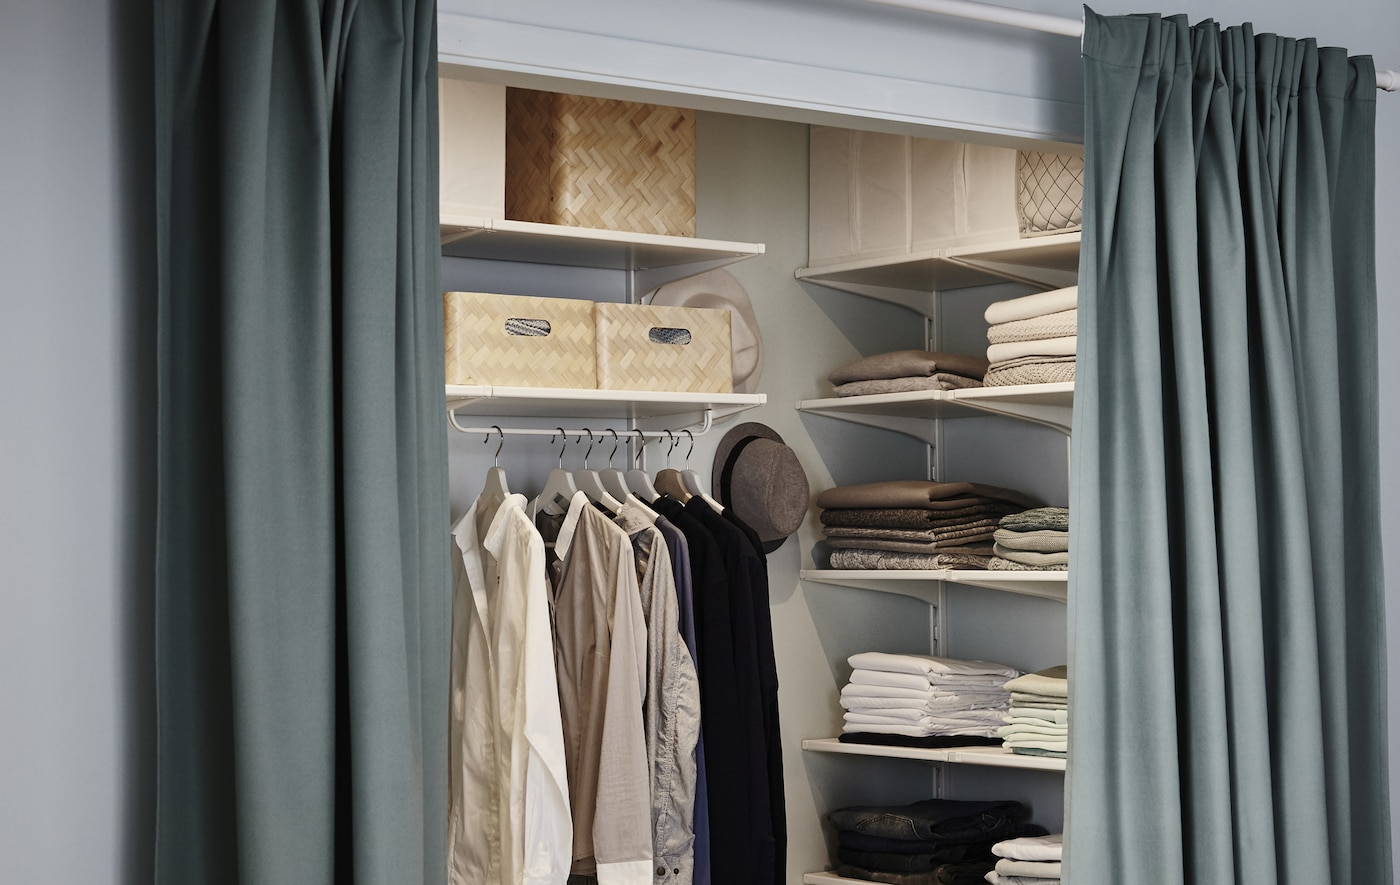 squarerooms-ikea-walk-in-wardrobe-curtain-ideas-closet-blue